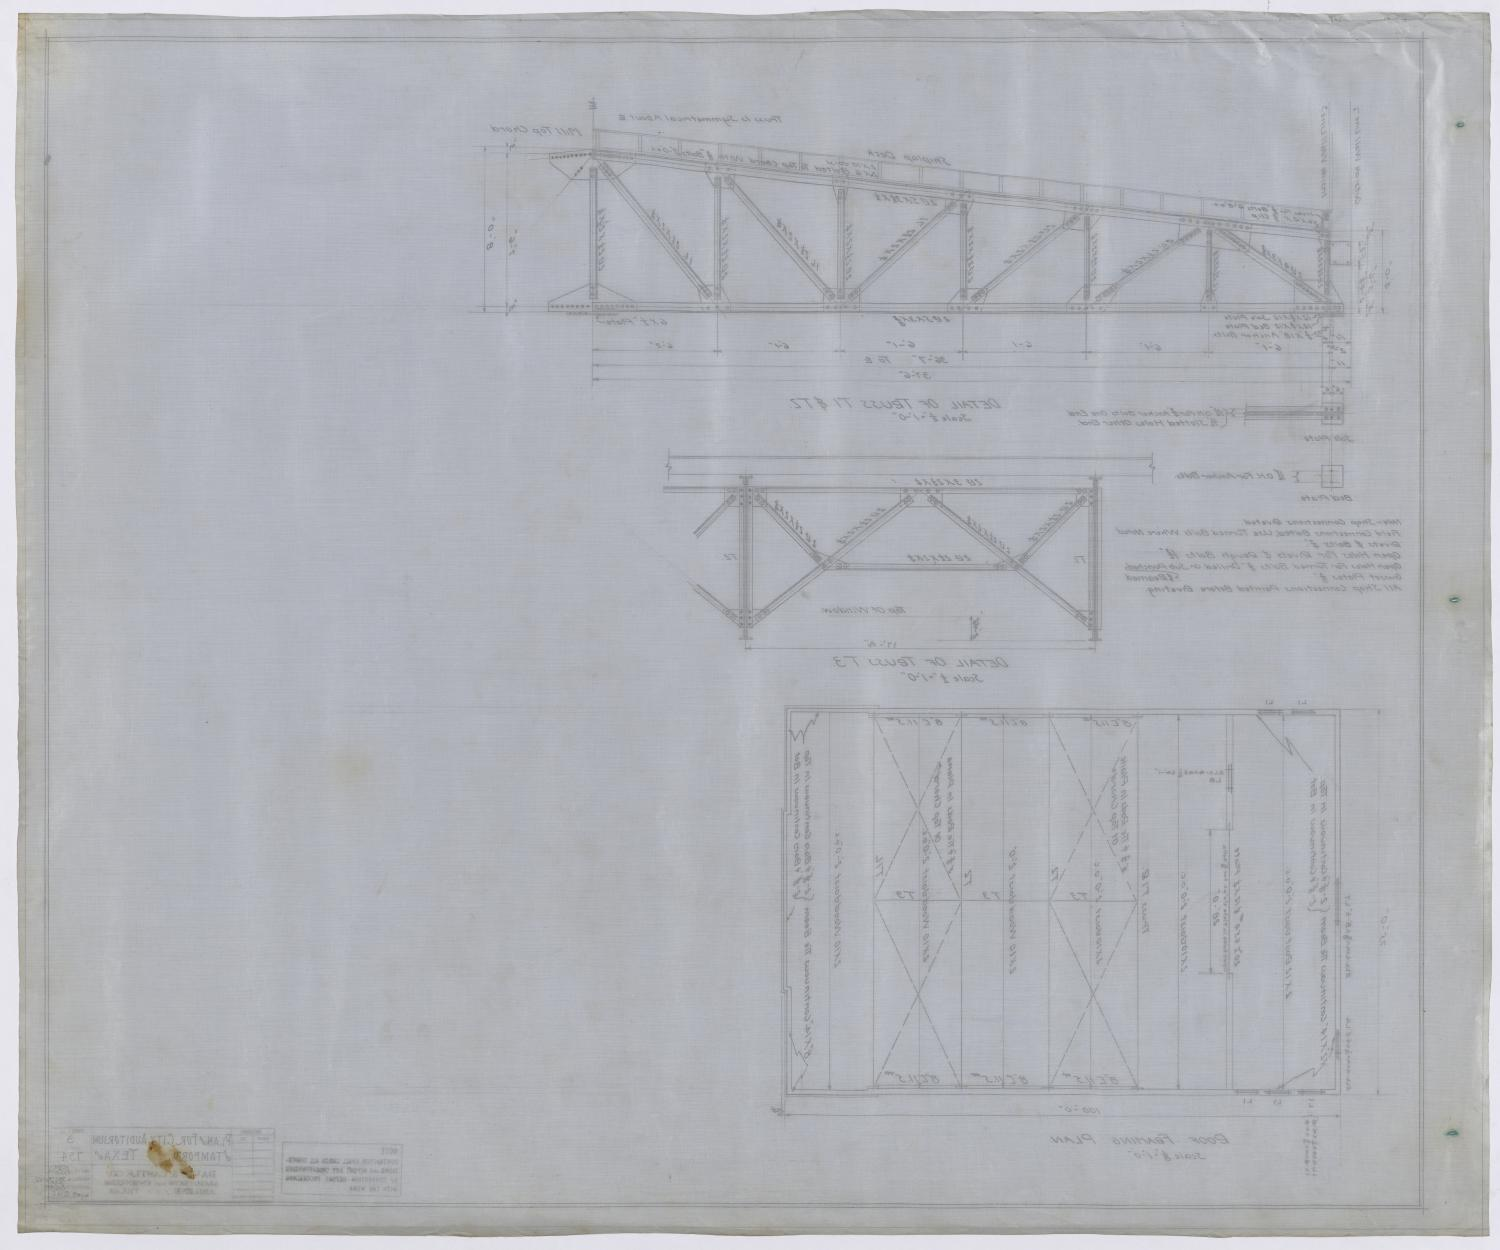 City Auditorium, Stamford, Texas: Framing Plan                                                                                                      [Sequence #]: 2 of 2